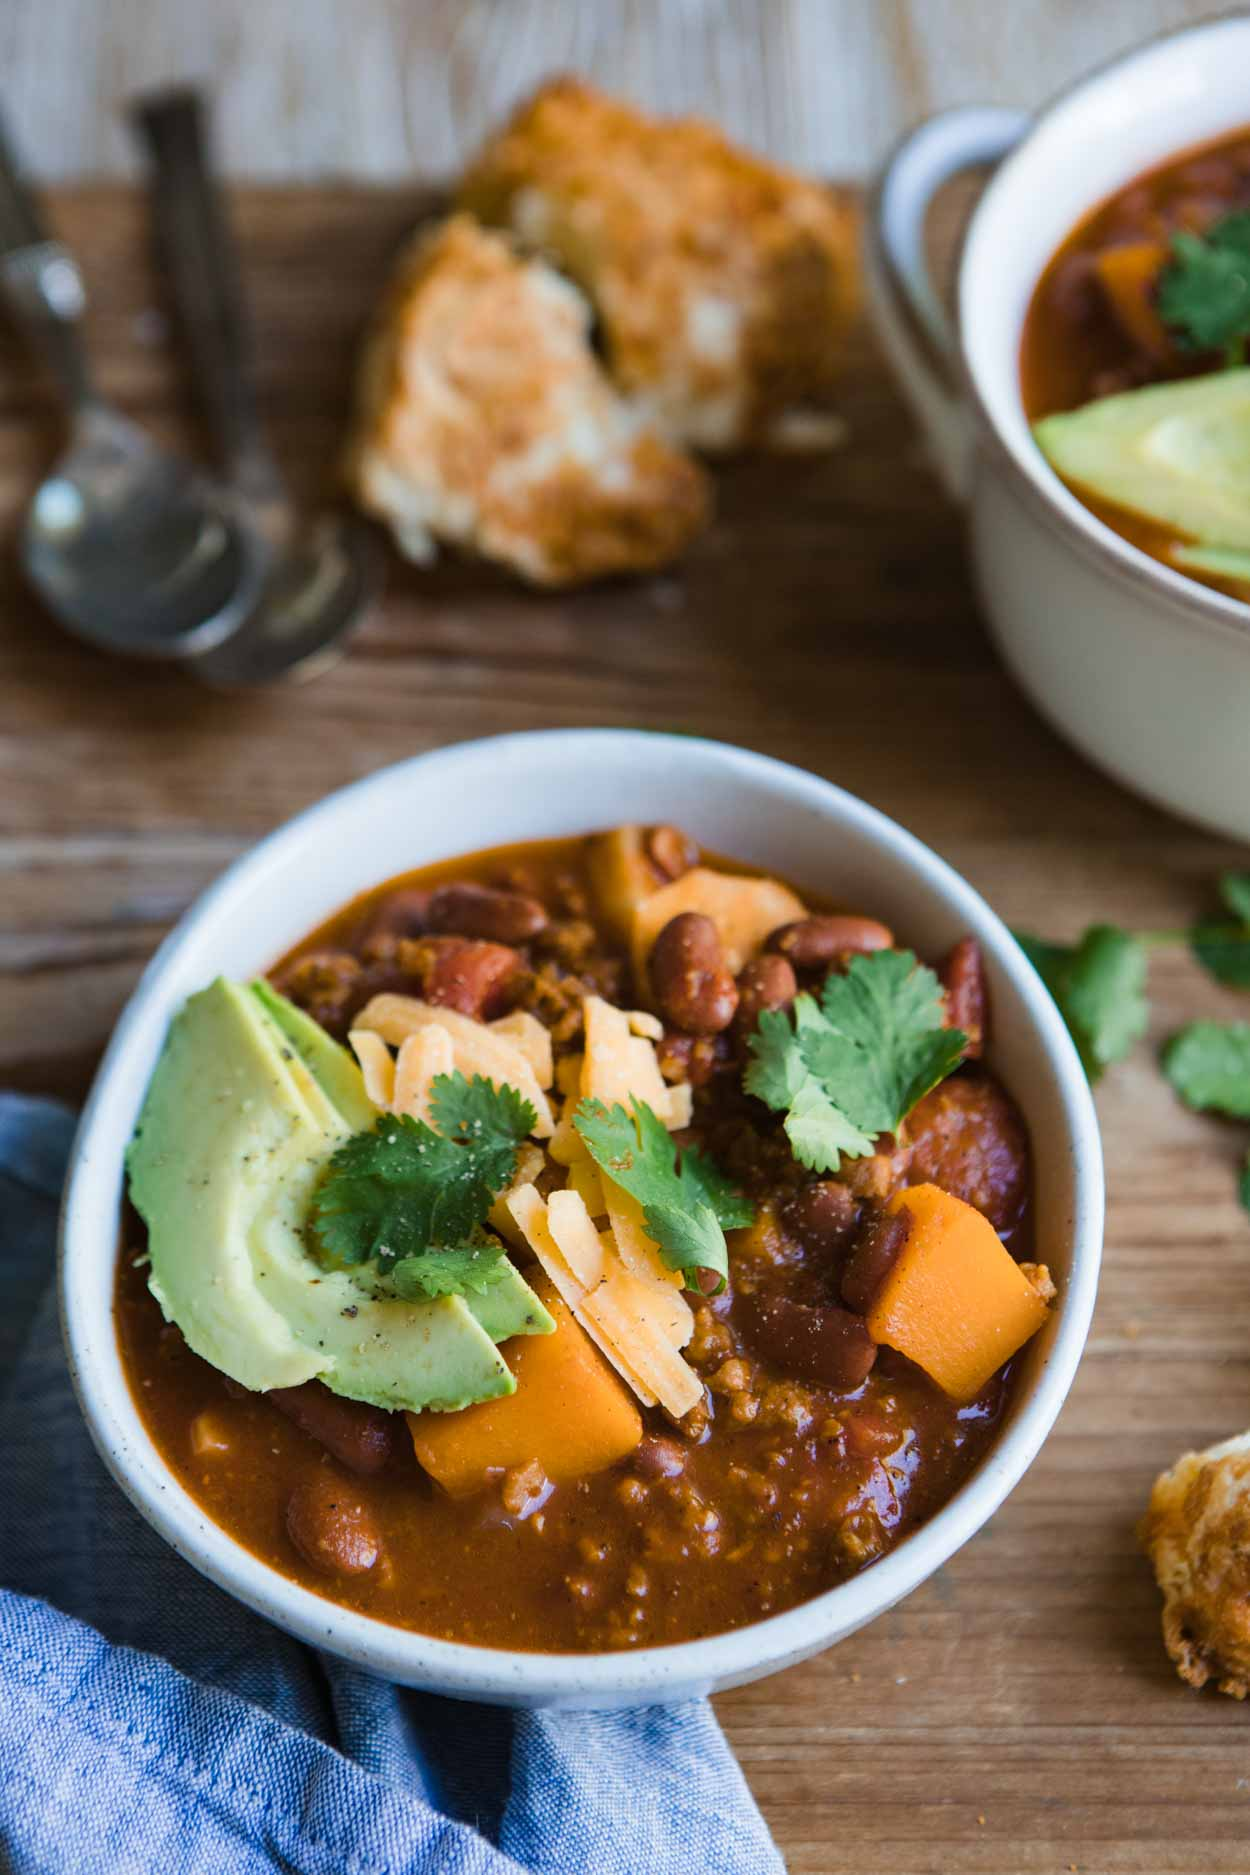 a bowl of vegetarian sweet potato chili with avocado, cheese and cilantro garnish